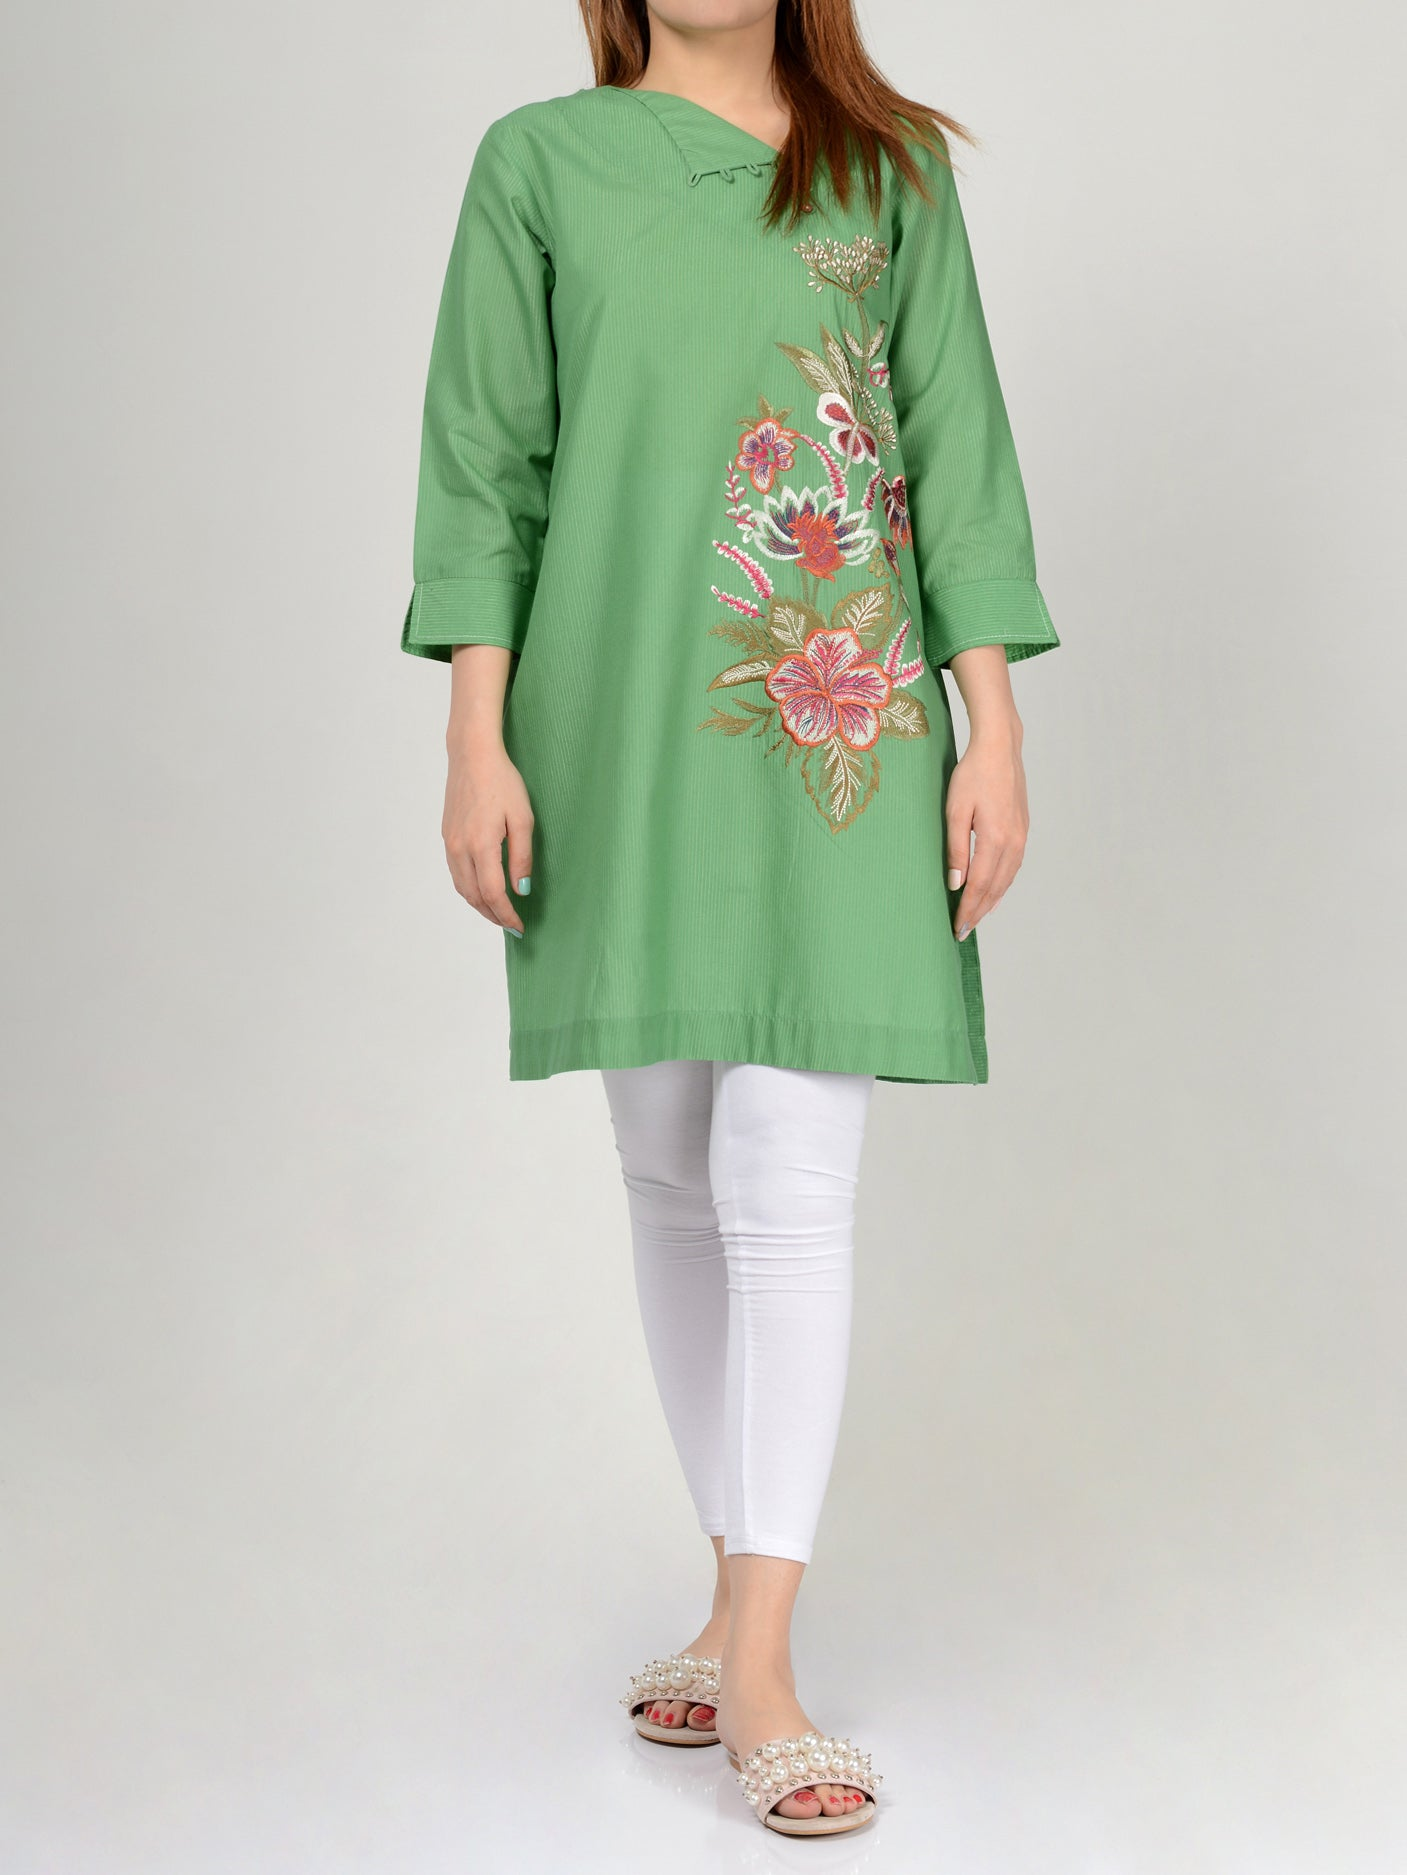 Embroidered Lawn Shirt P0242